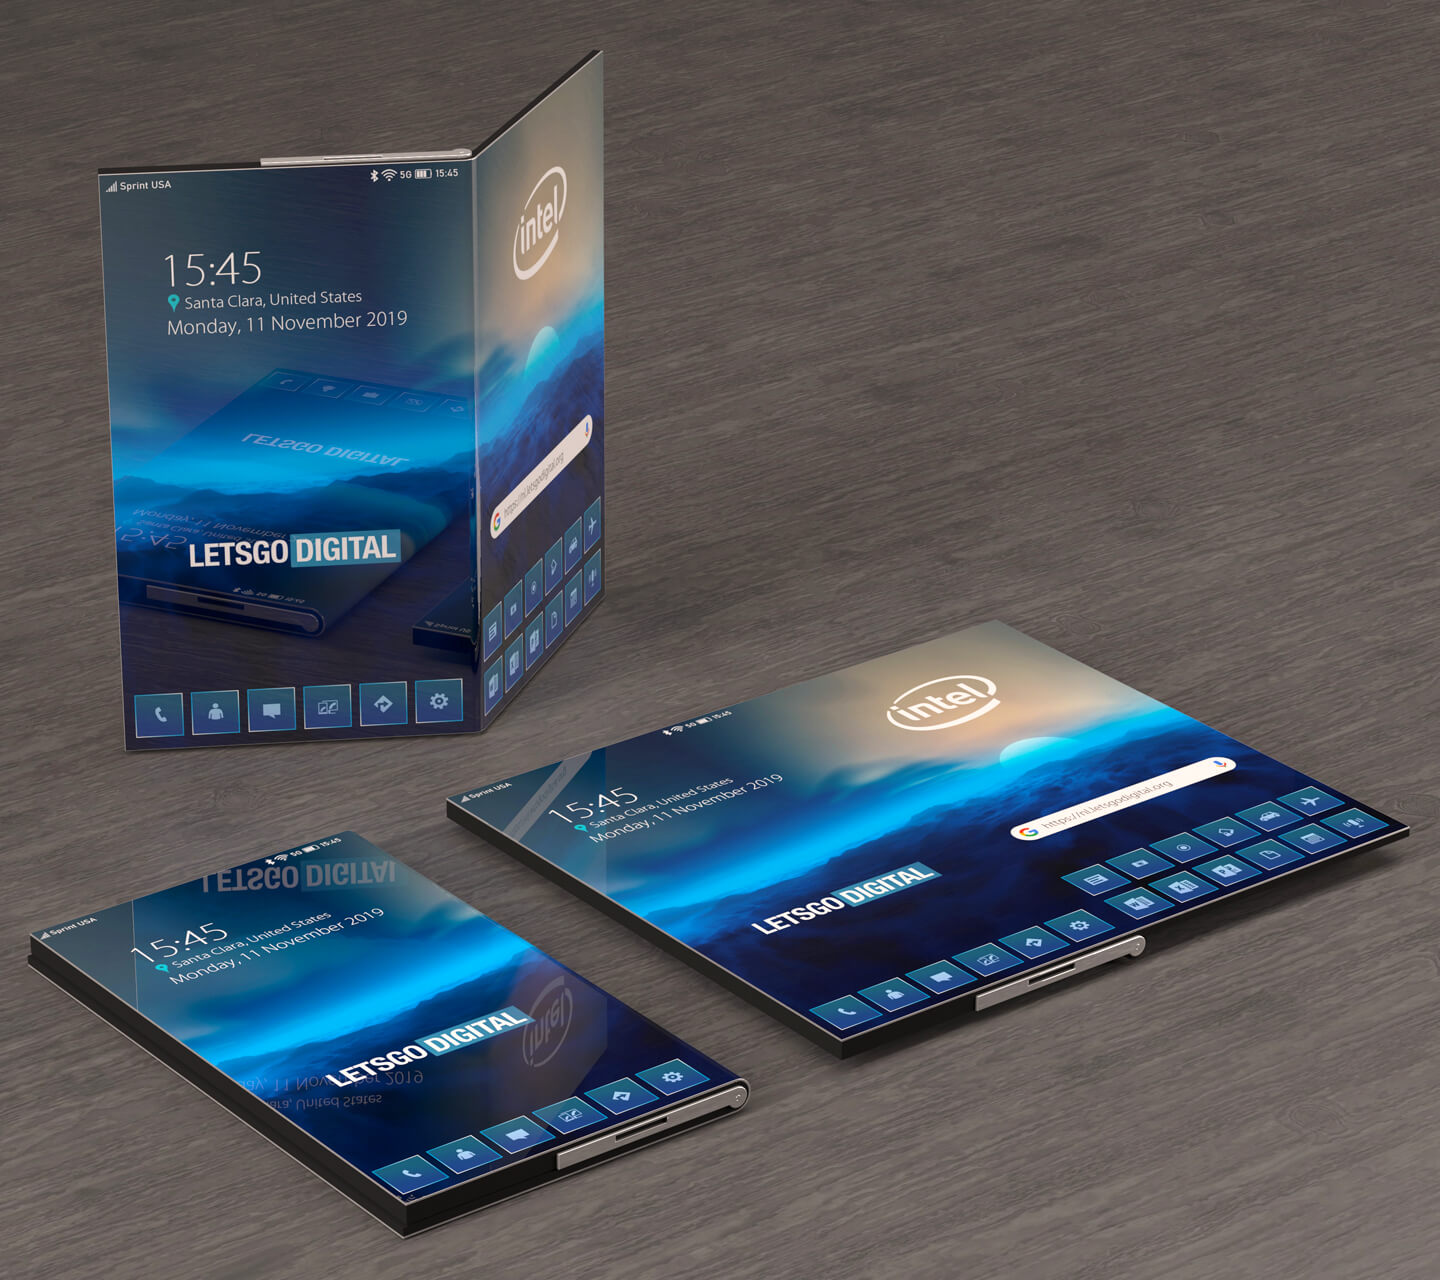 Intel foldable phone